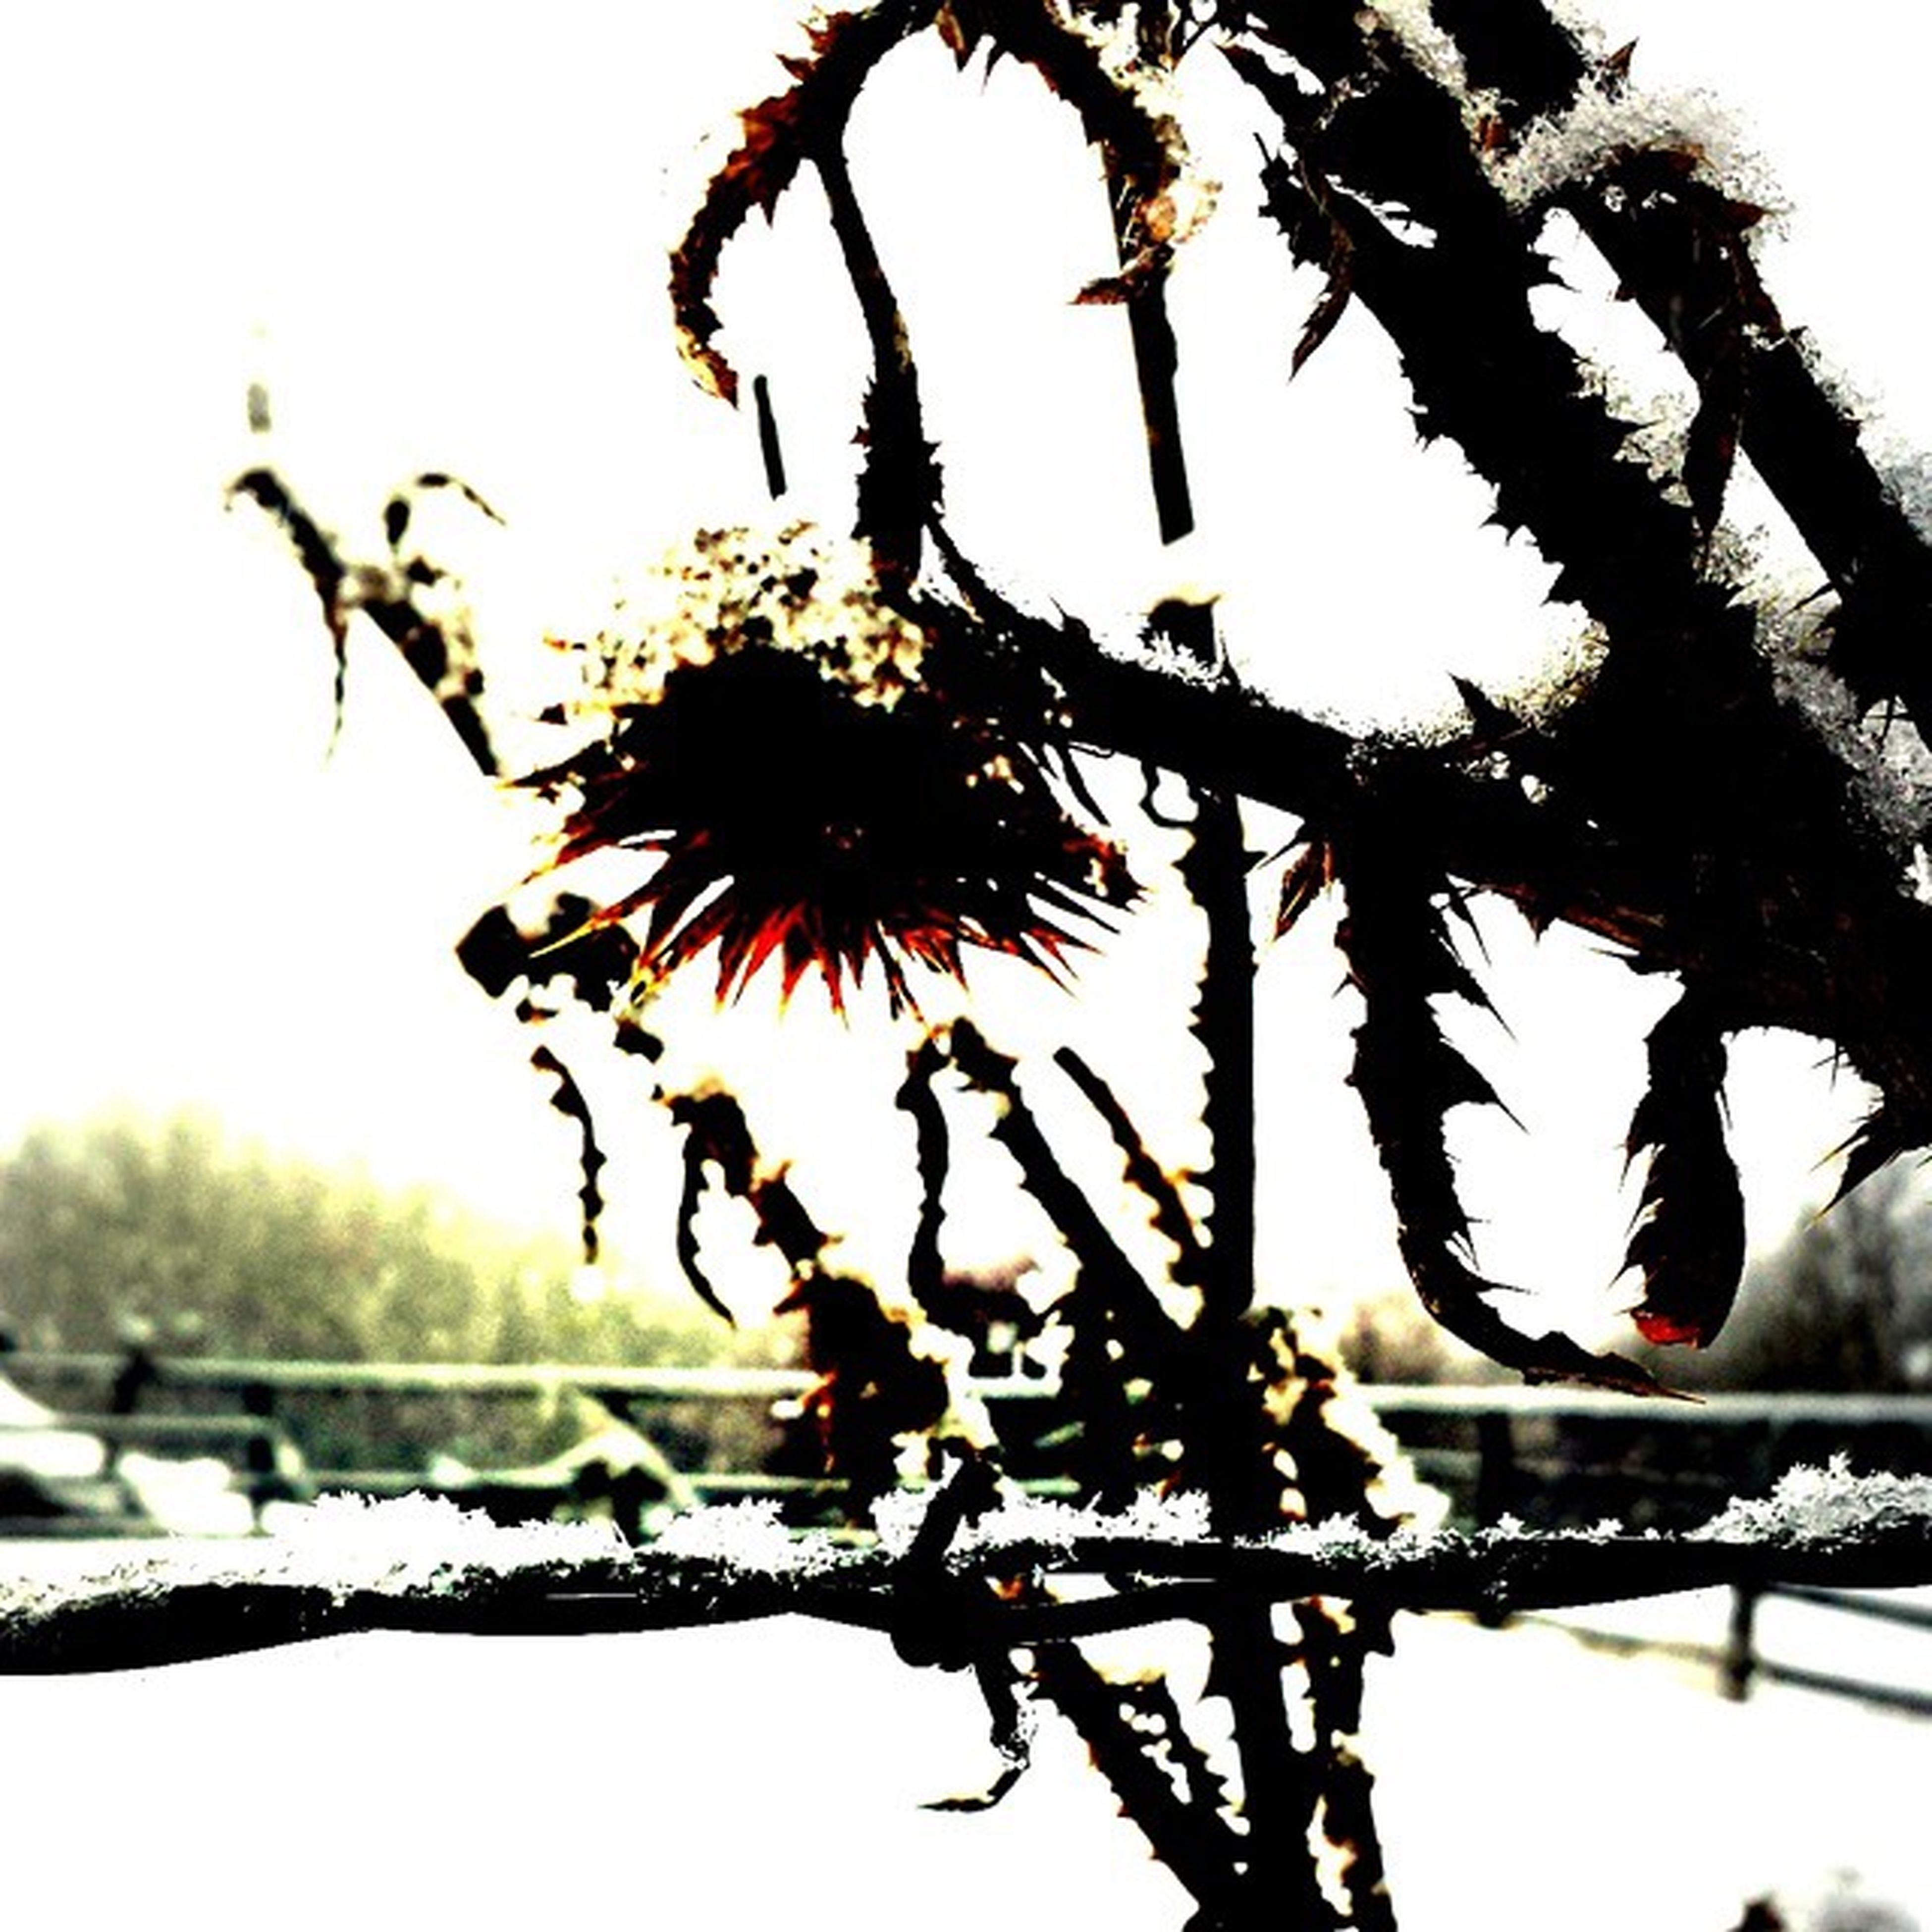 branch, focus on foreground, close-up, nature, sky, dry, clear sky, tree, silhouette, bare tree, outdoors, dead plant, tranquility, no people, beauty in nature, winter, day, growth, twig, low angle view